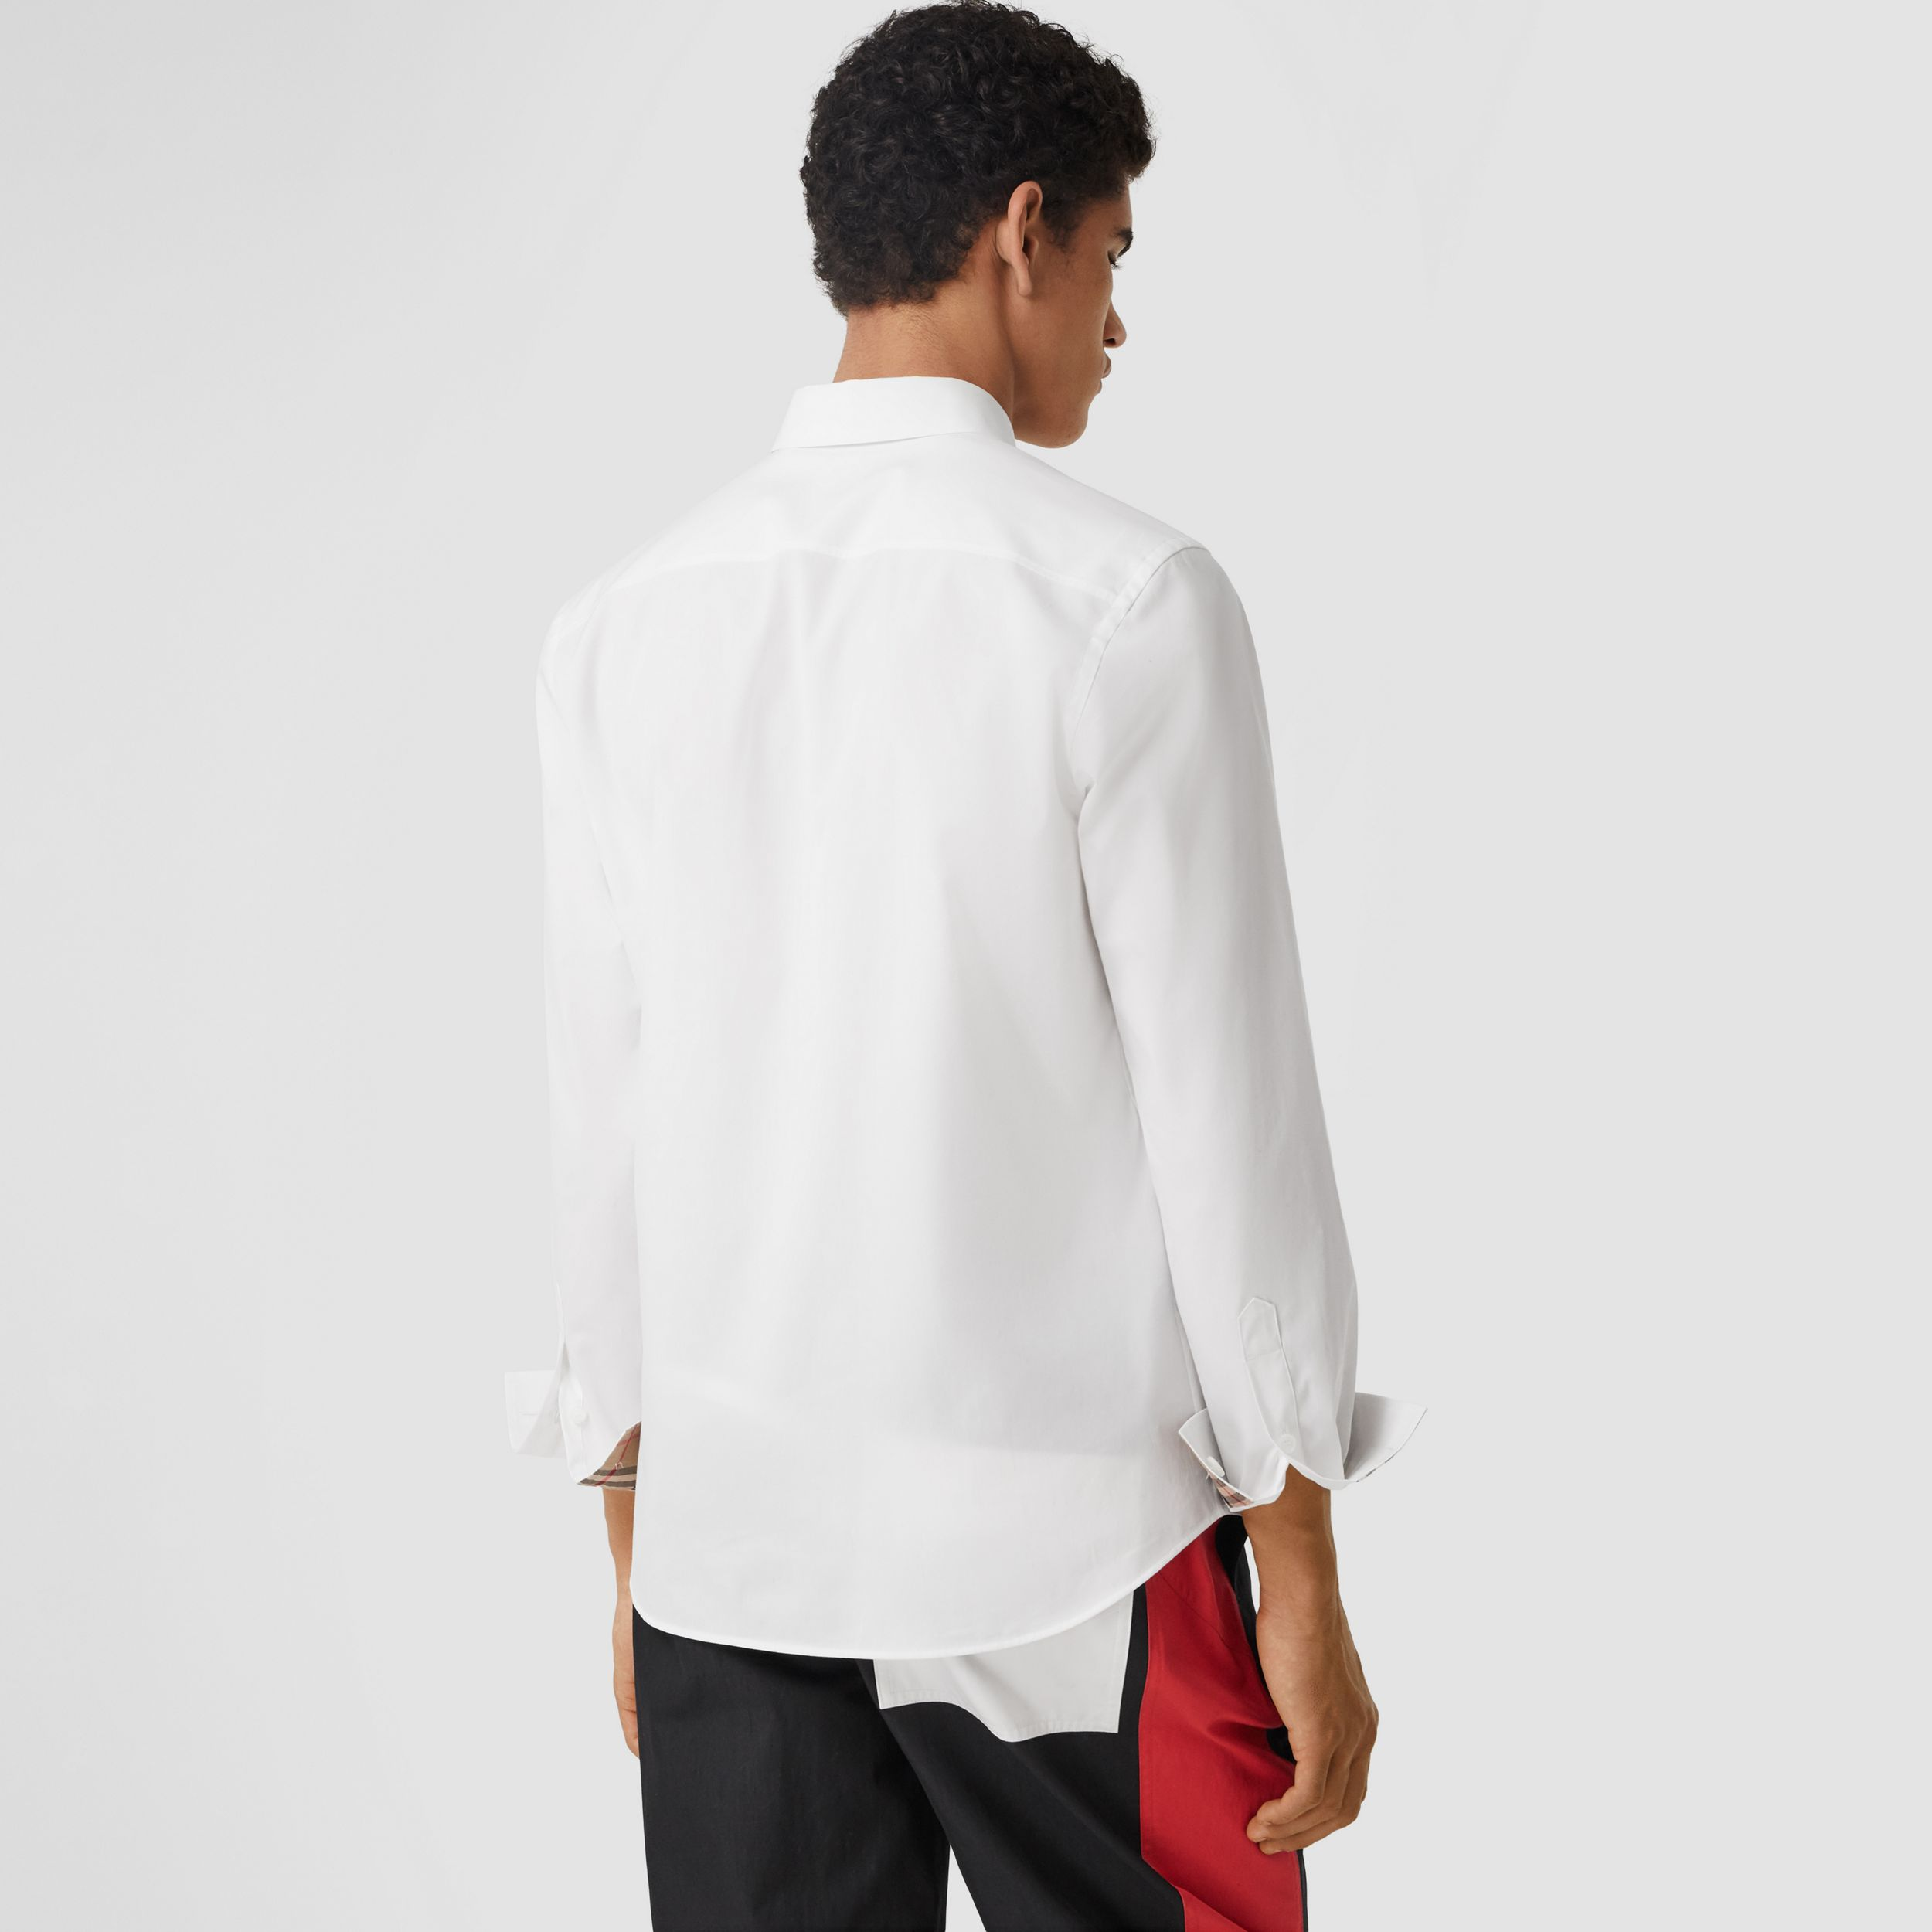 Slim Fit Monogram Motif Stretch Cotton Poplin Shirt in White - Men | Burberry Hong Kong S.A.R. - 3